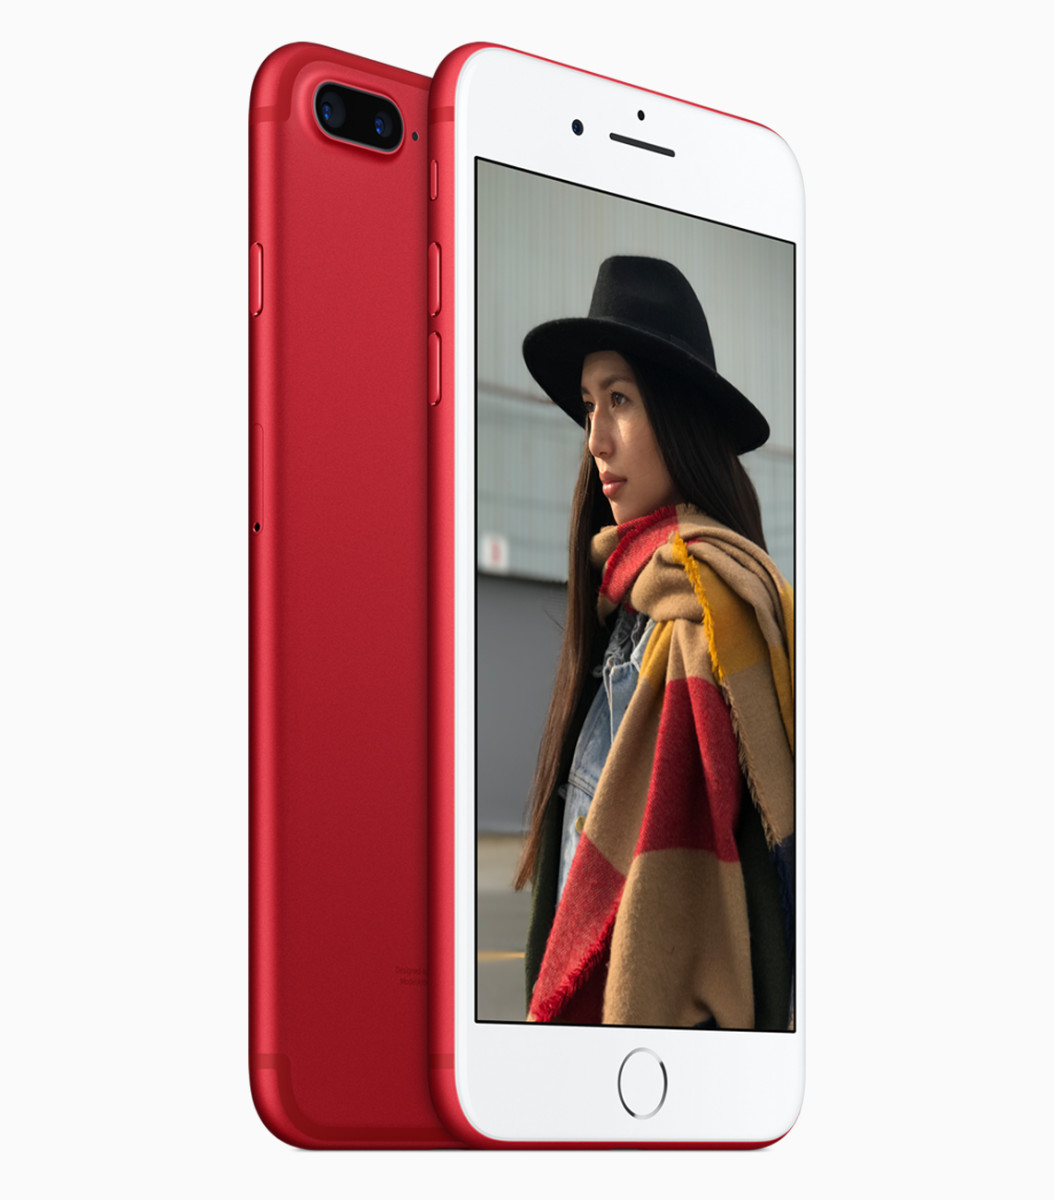 Apple Product Red iPhone 7 Back Front